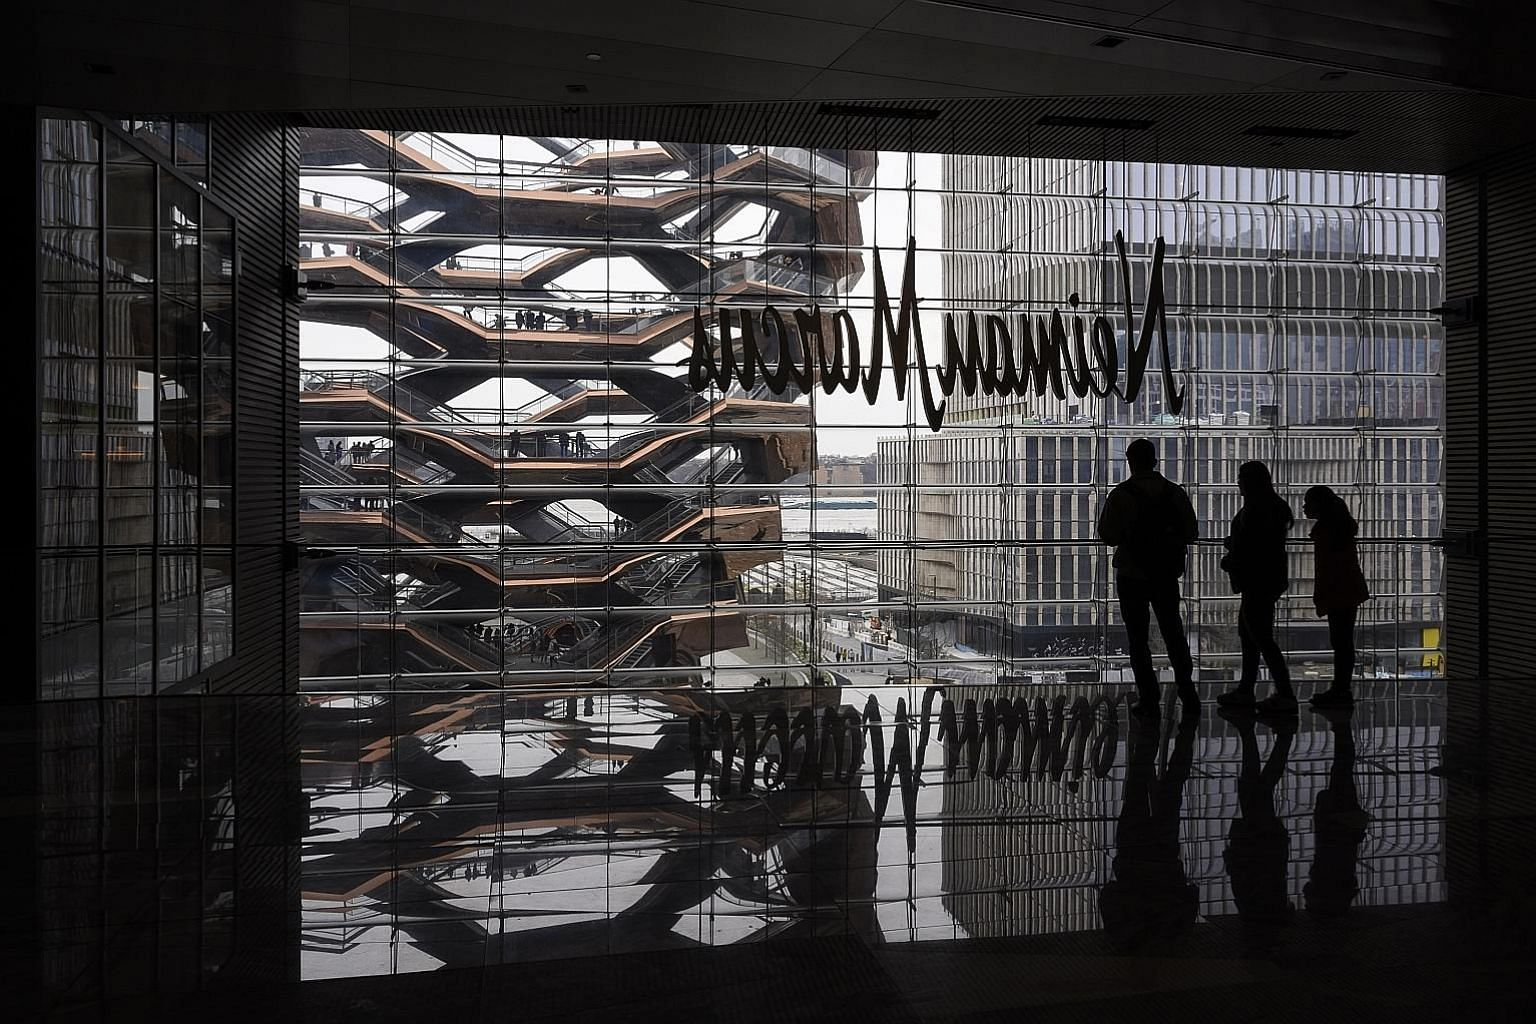 The 11ha Hudson Yards (above and left) in Manhattan has helped define the live-work-play ethos that many younger professionals seek in cities. But such mixed-use malls have suffered from measures imposed to curb the coronavirus pandemic PHOTOS: NYTIM